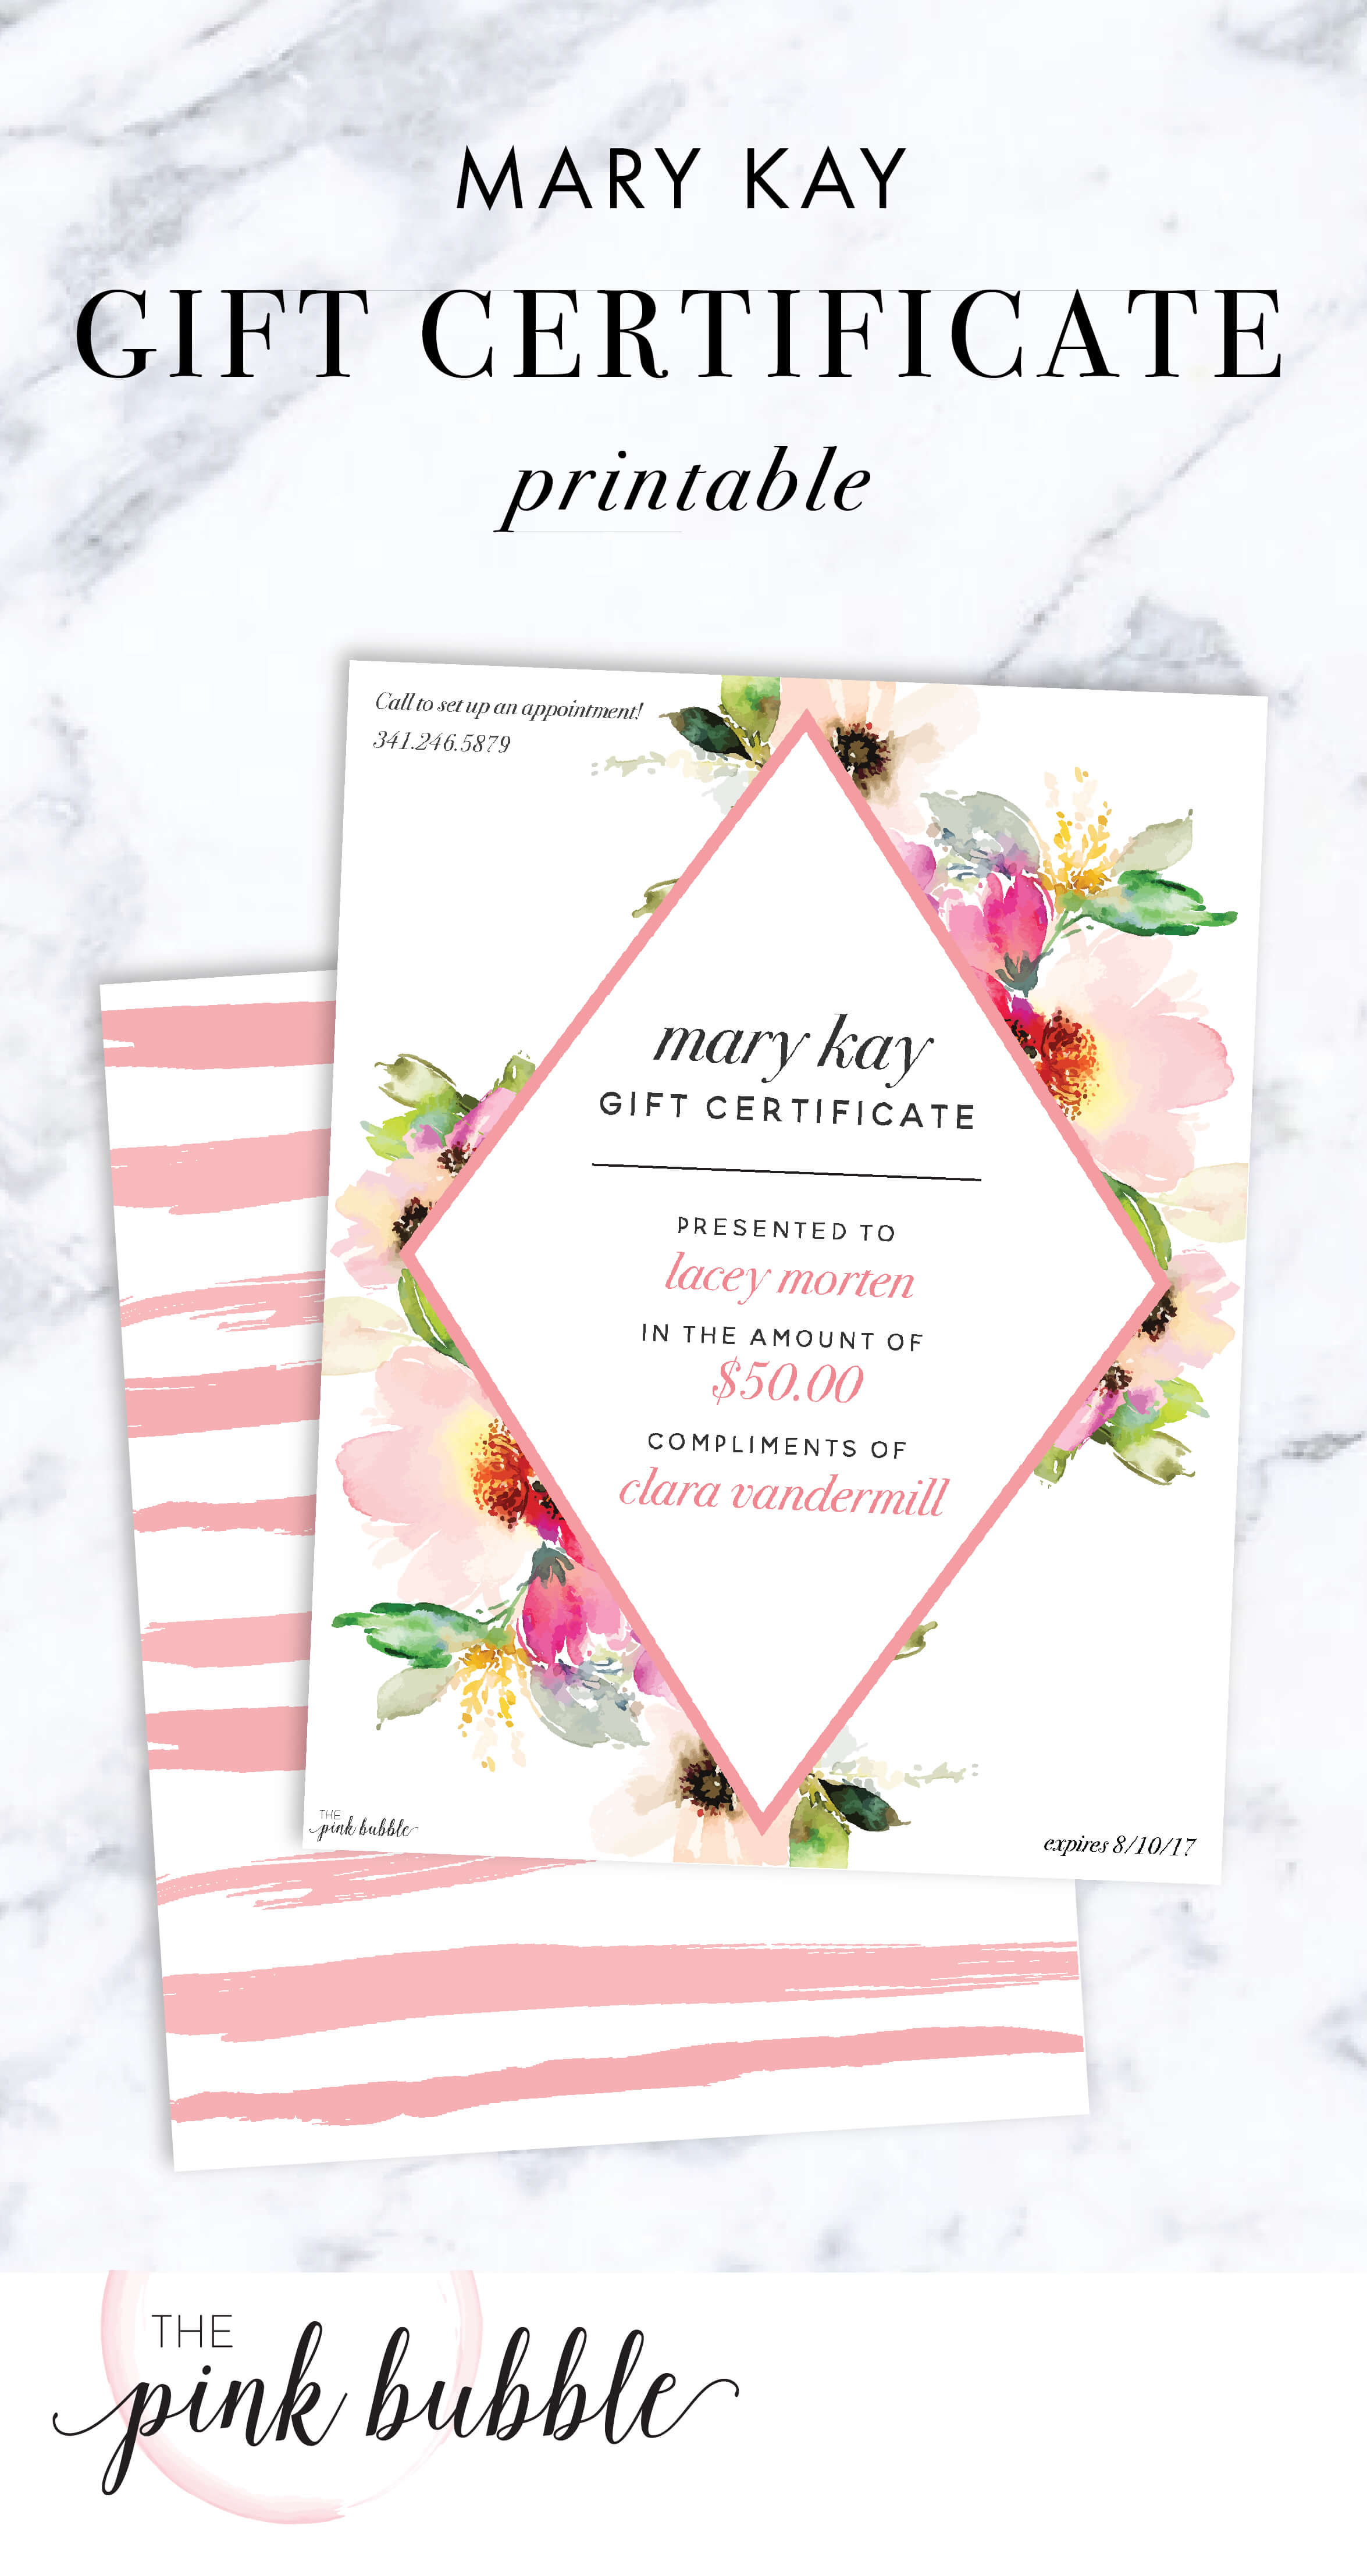 Mary Kay Gift Certificate! Find It Only At Www.thepinkbubble for Mary Kay Gift Certificate Template